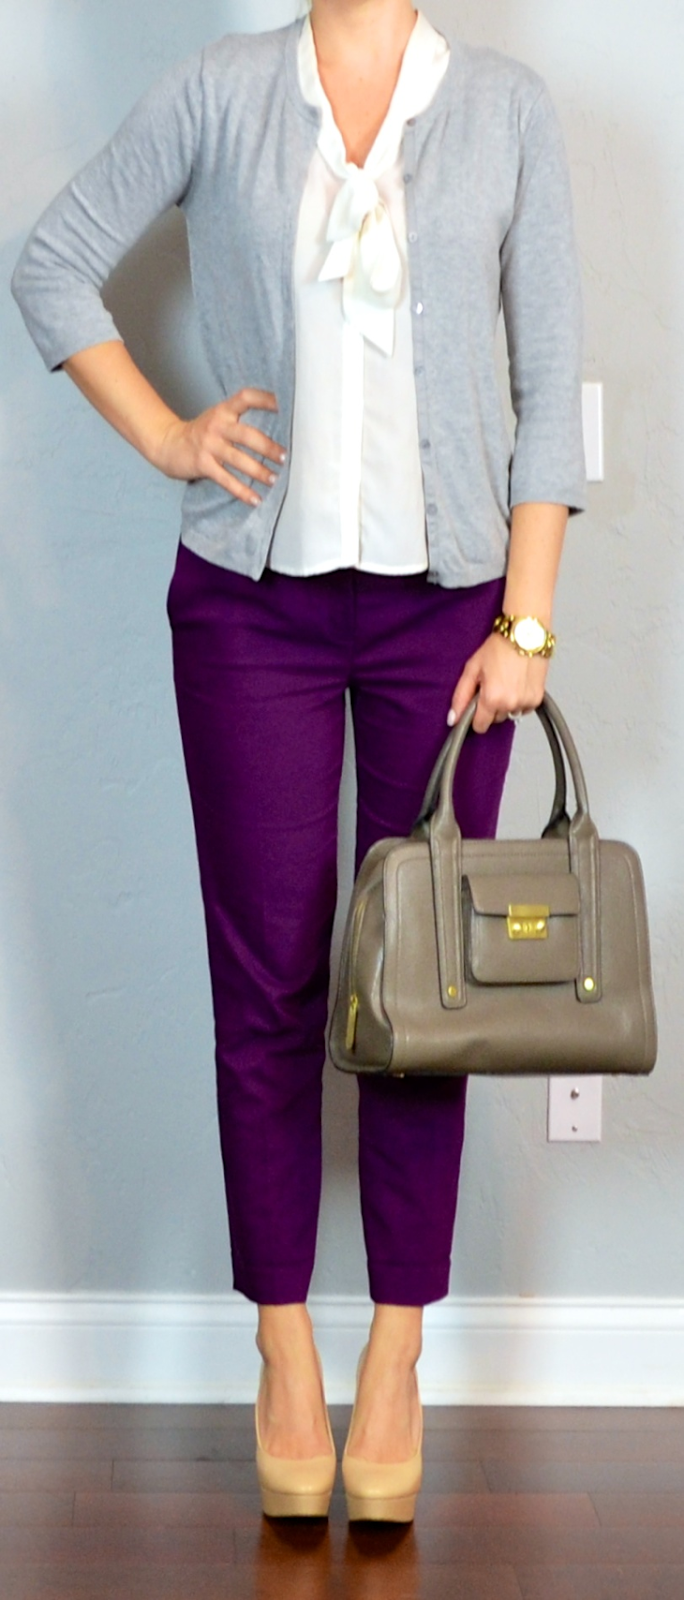 8d3b17189f outfit post  purple cropped pants